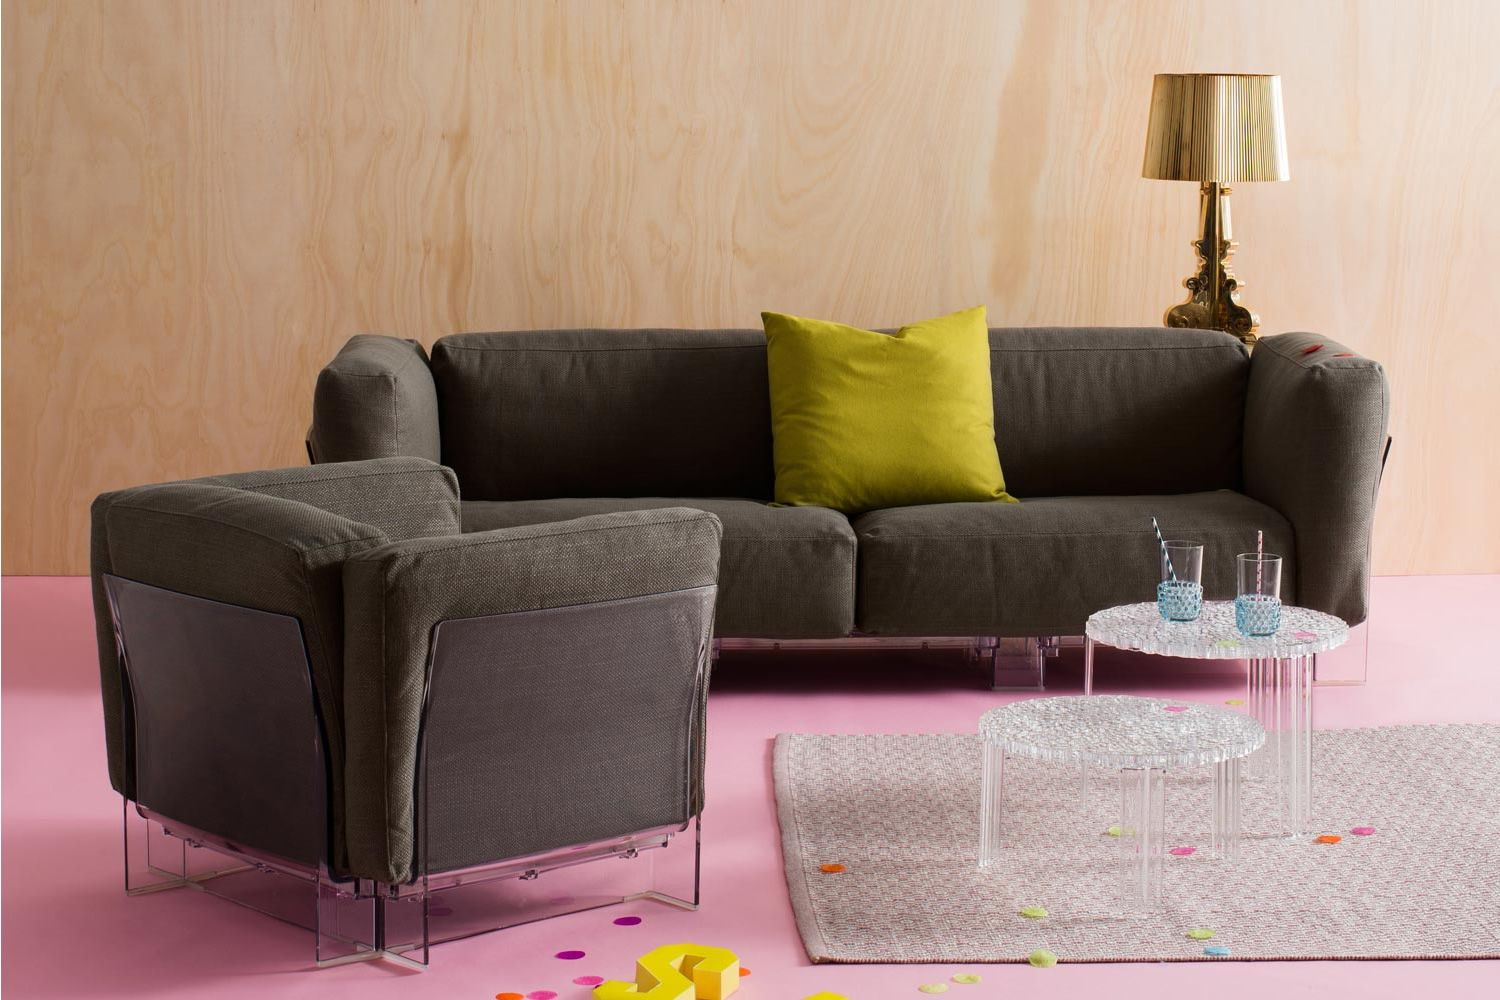 Pop Duo Sofa   Sofa With Transparent Polycarbonate Structure And Cushions  Covered In Grey Nilo Fabric ...